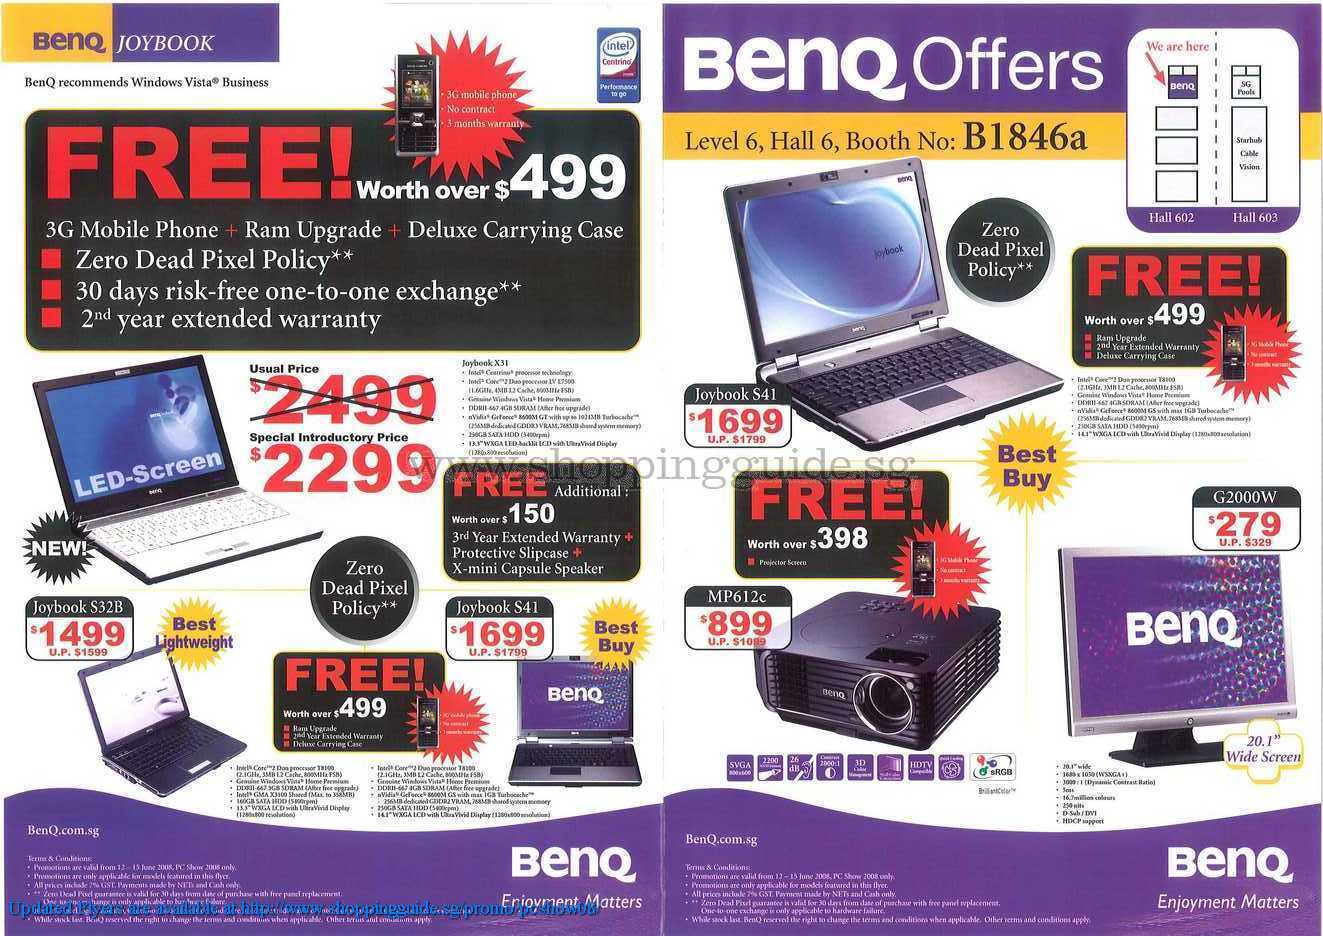 PC Show 2008 price list image brochure of Benq ShoppingGuide.SG-PcShow08-079